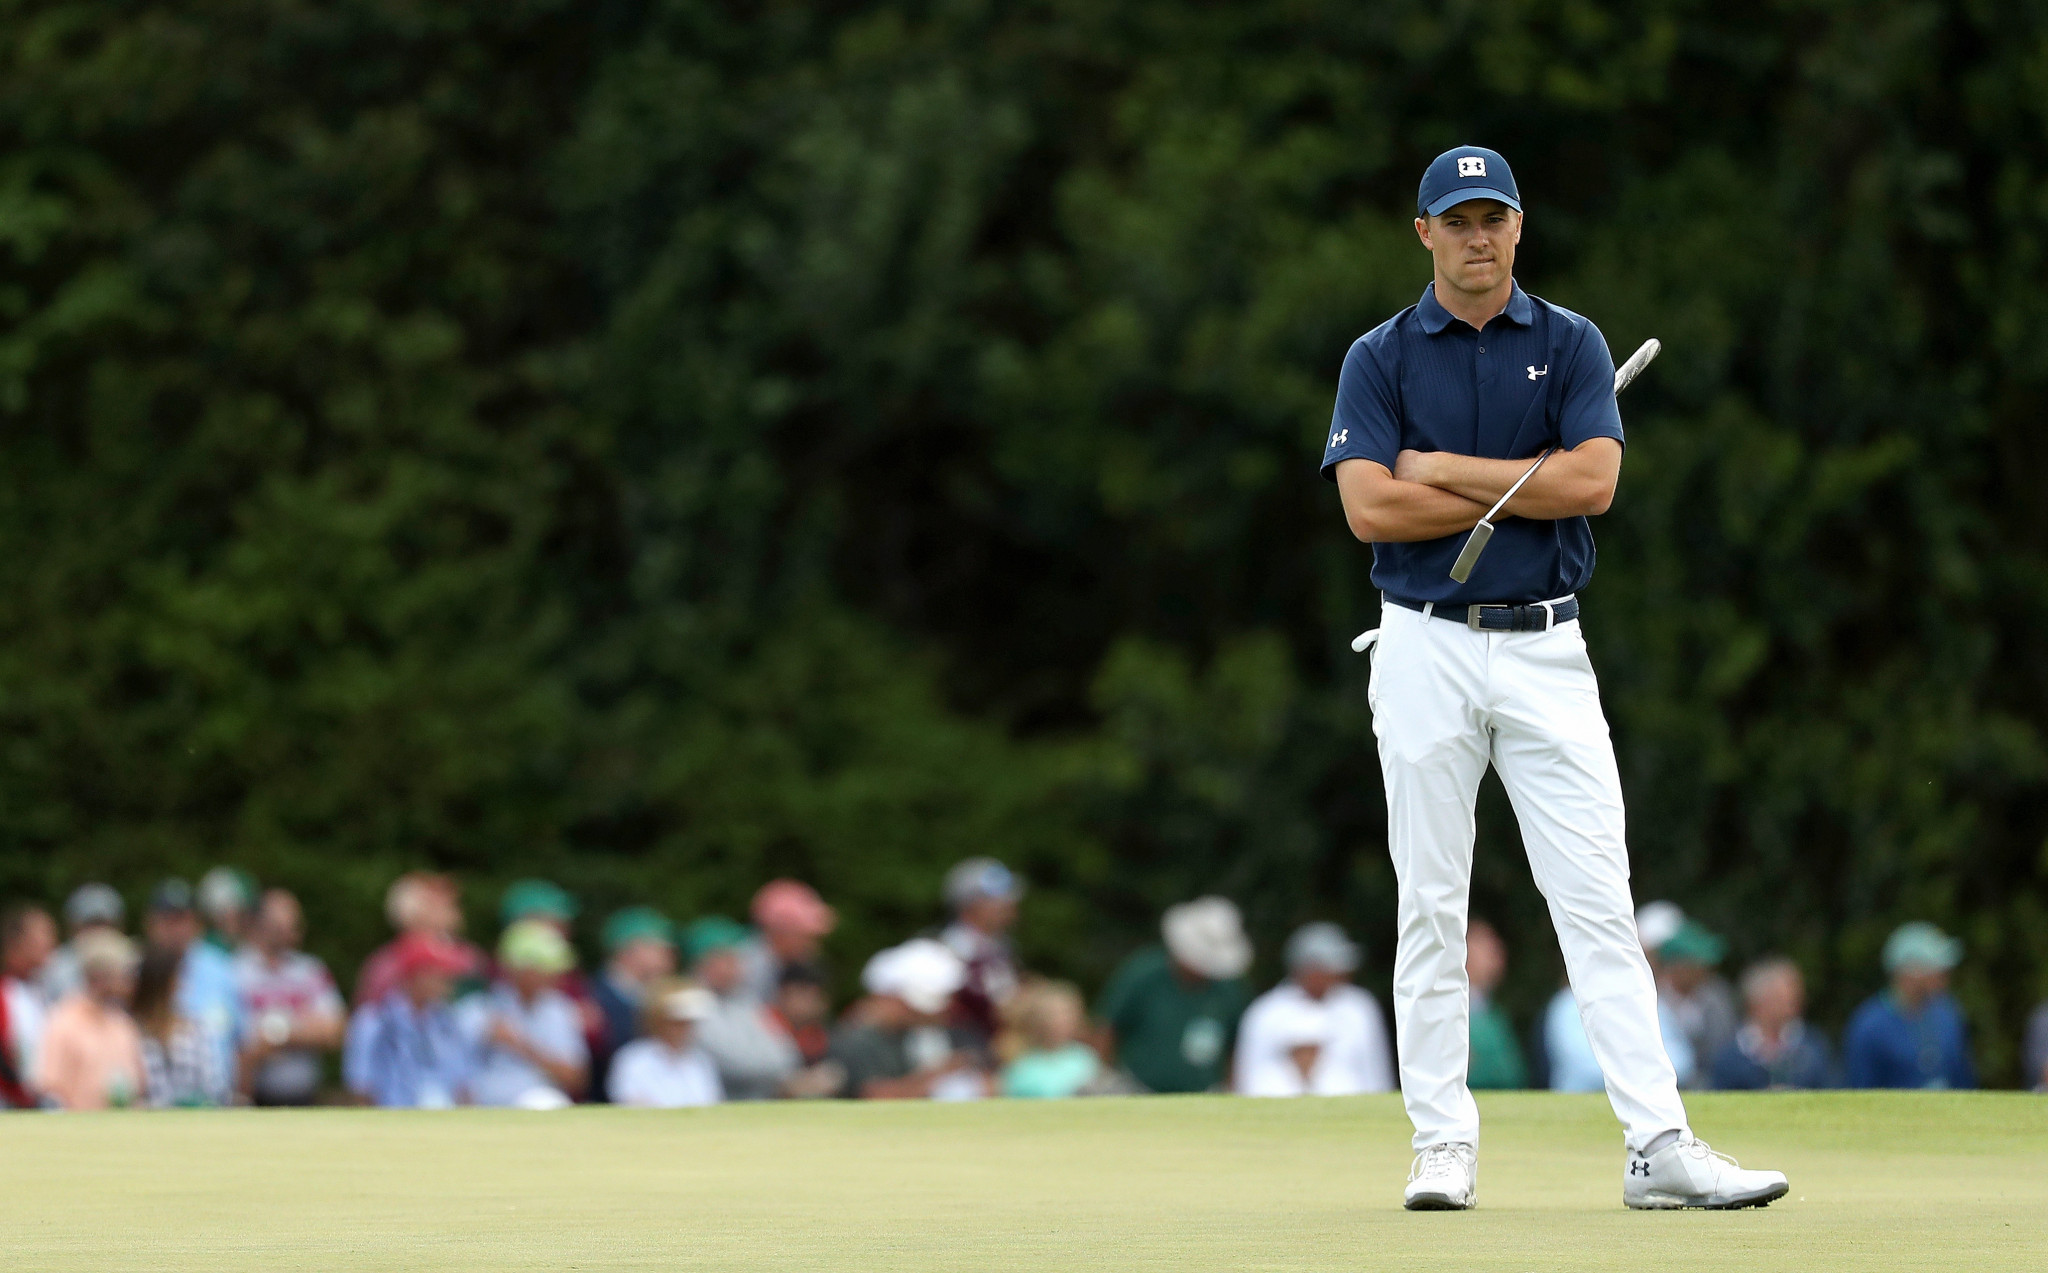 Jordan Spieth is the leader after the first round ©Getty Images